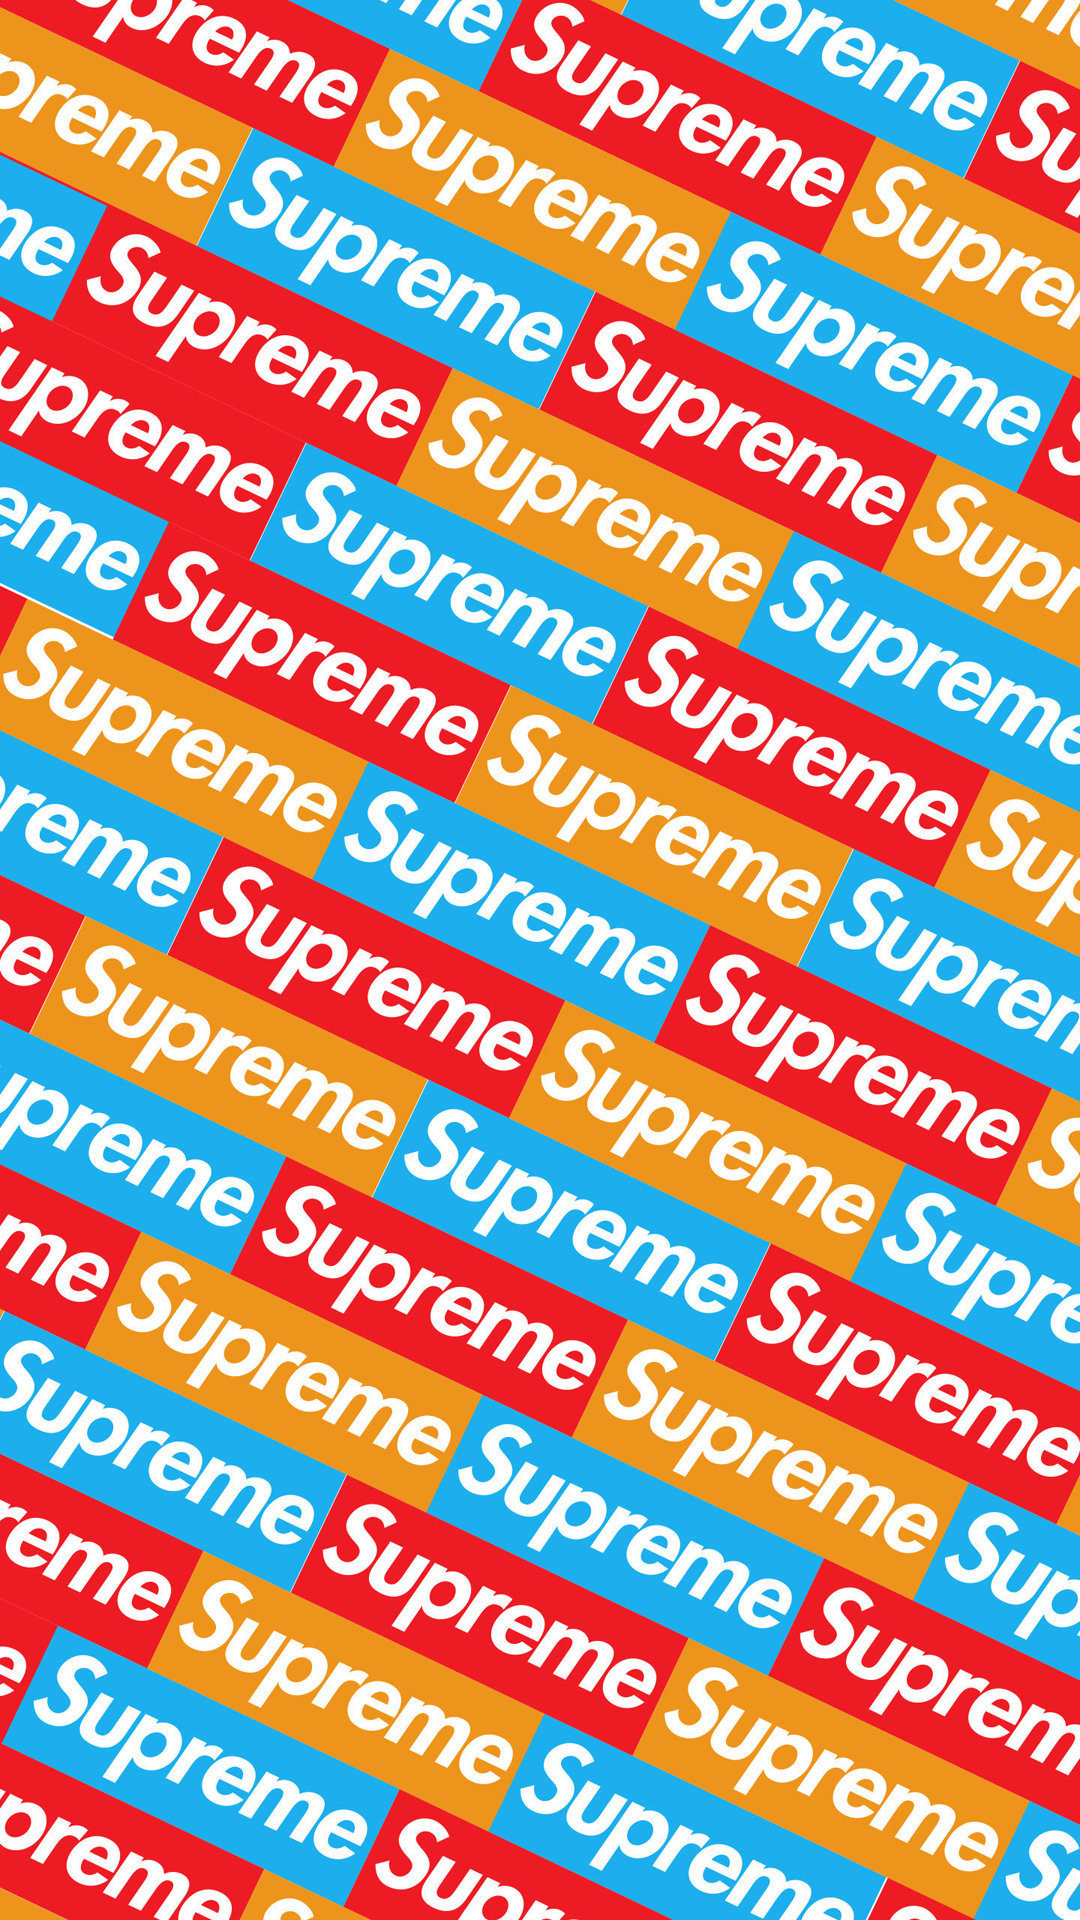 wallpaper iphone supreme: Supreme Wallpaper (73+ Images